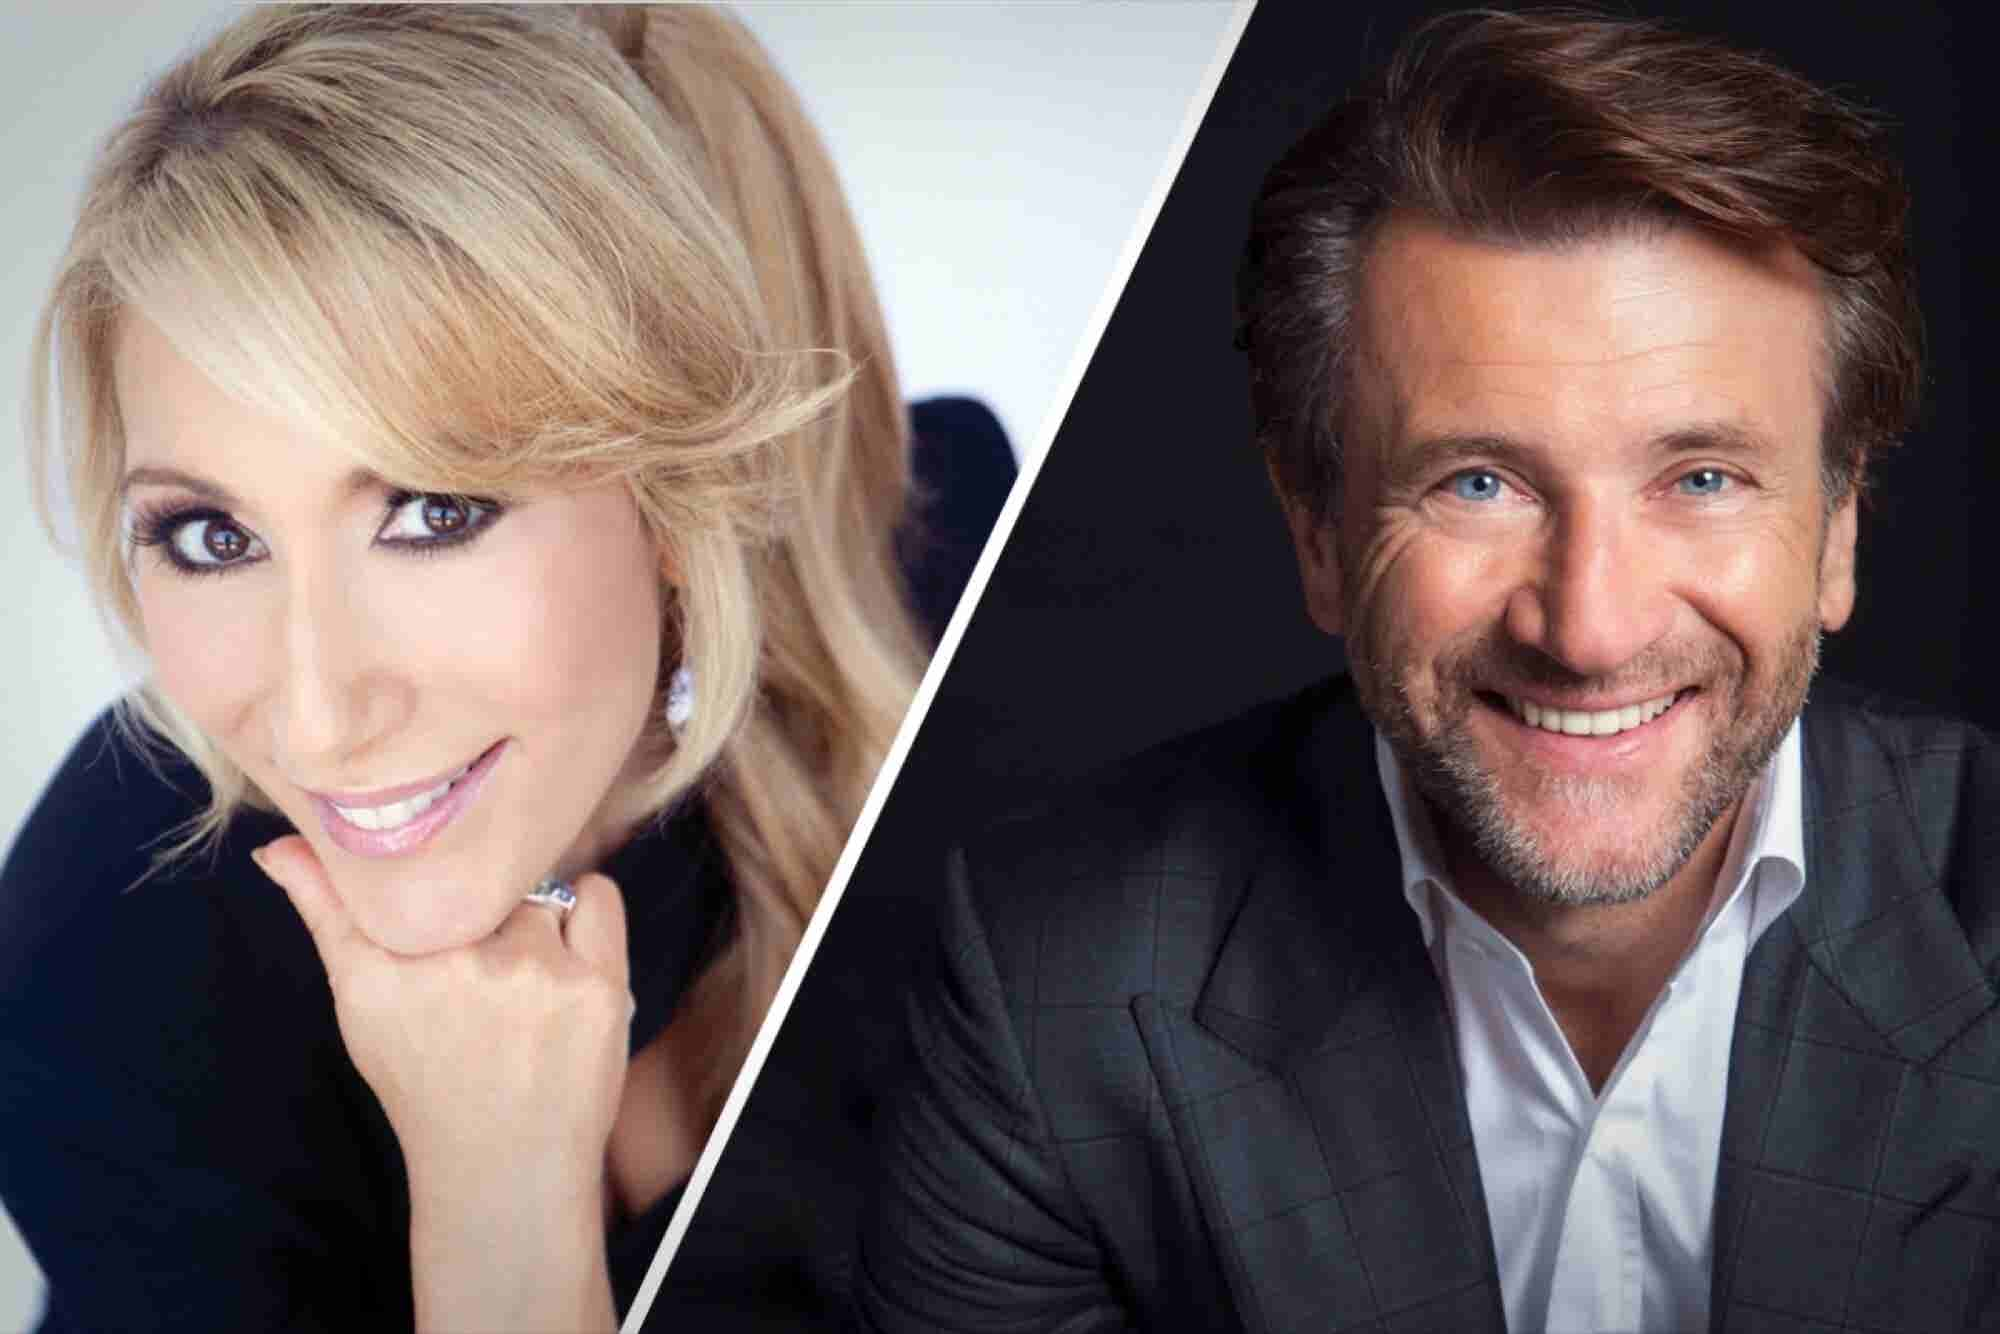 Shark Tank's Lori Greiner and Robert Herjavec on What Makes a Great Boss